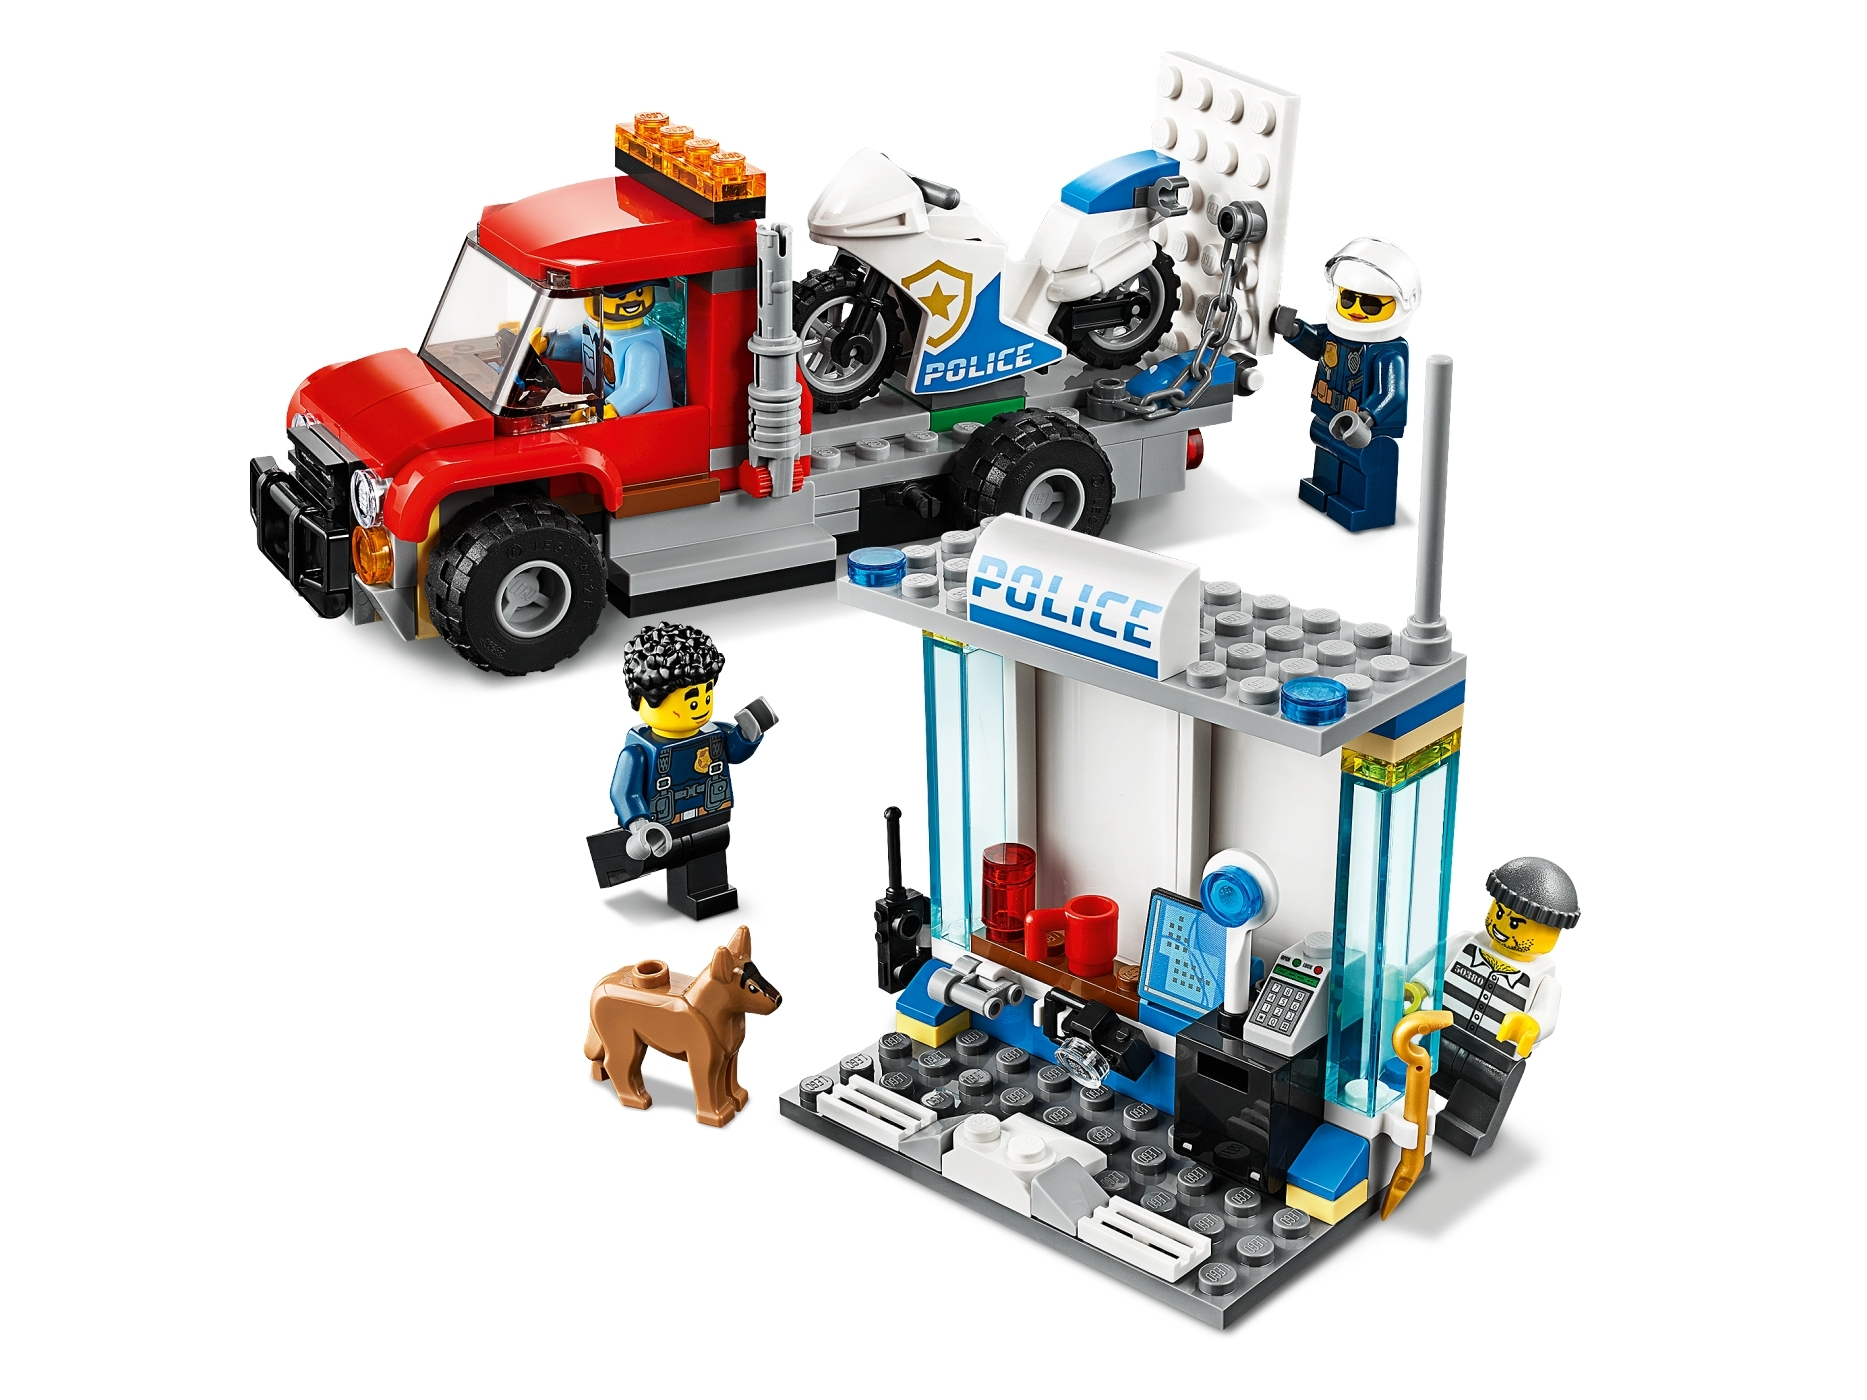 Police Brick Box 60270 City Buy Online At The Official Lego Shop Us